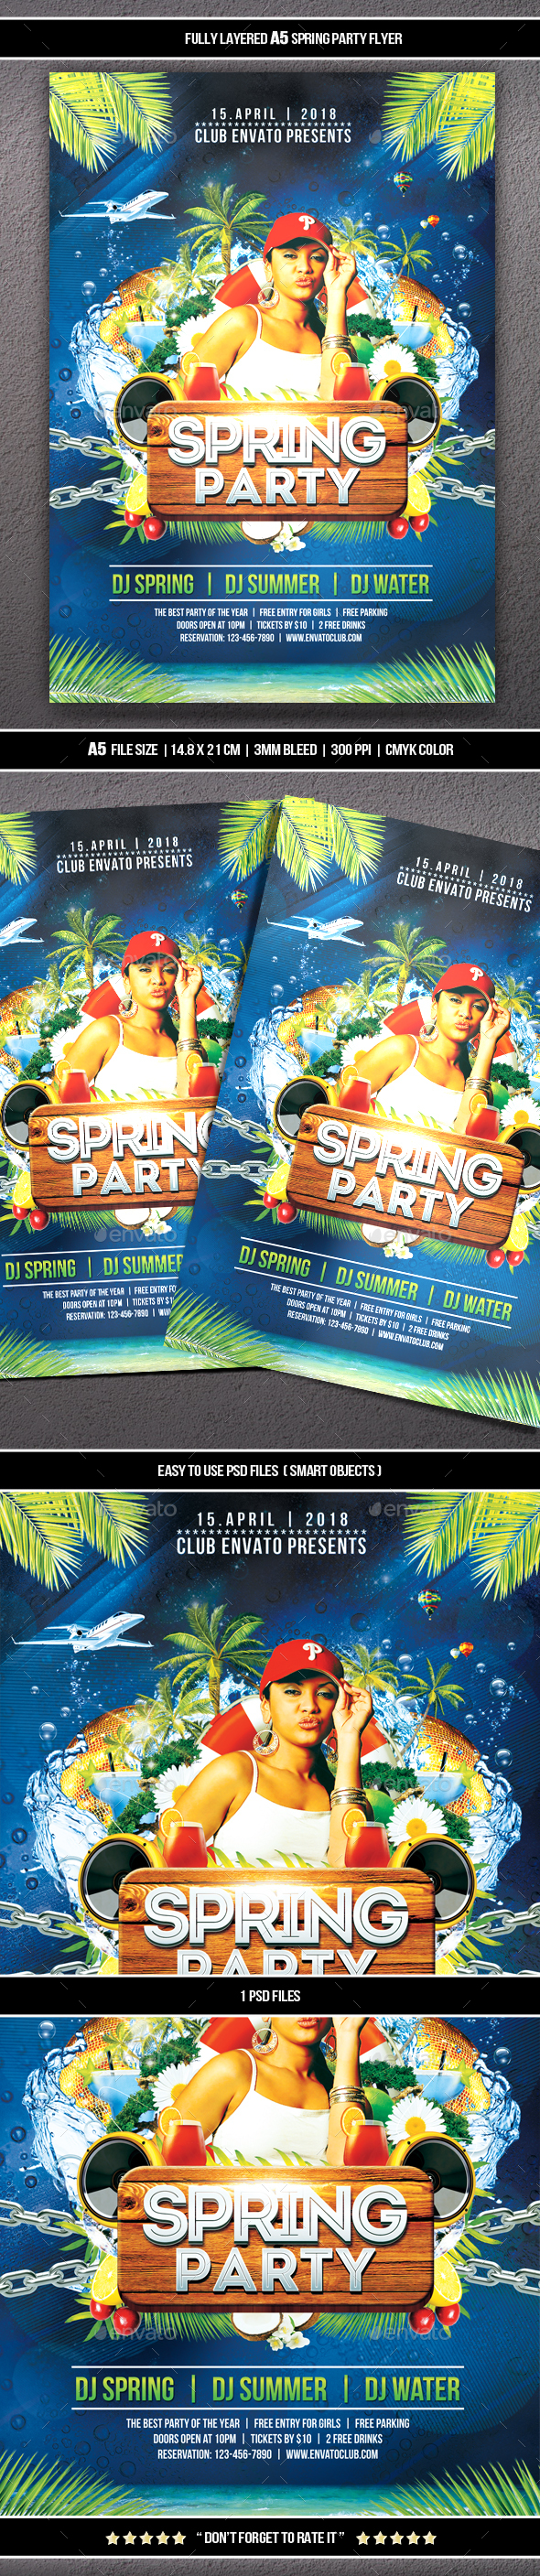 GraphicRiver Spring Party Flyer 21169054